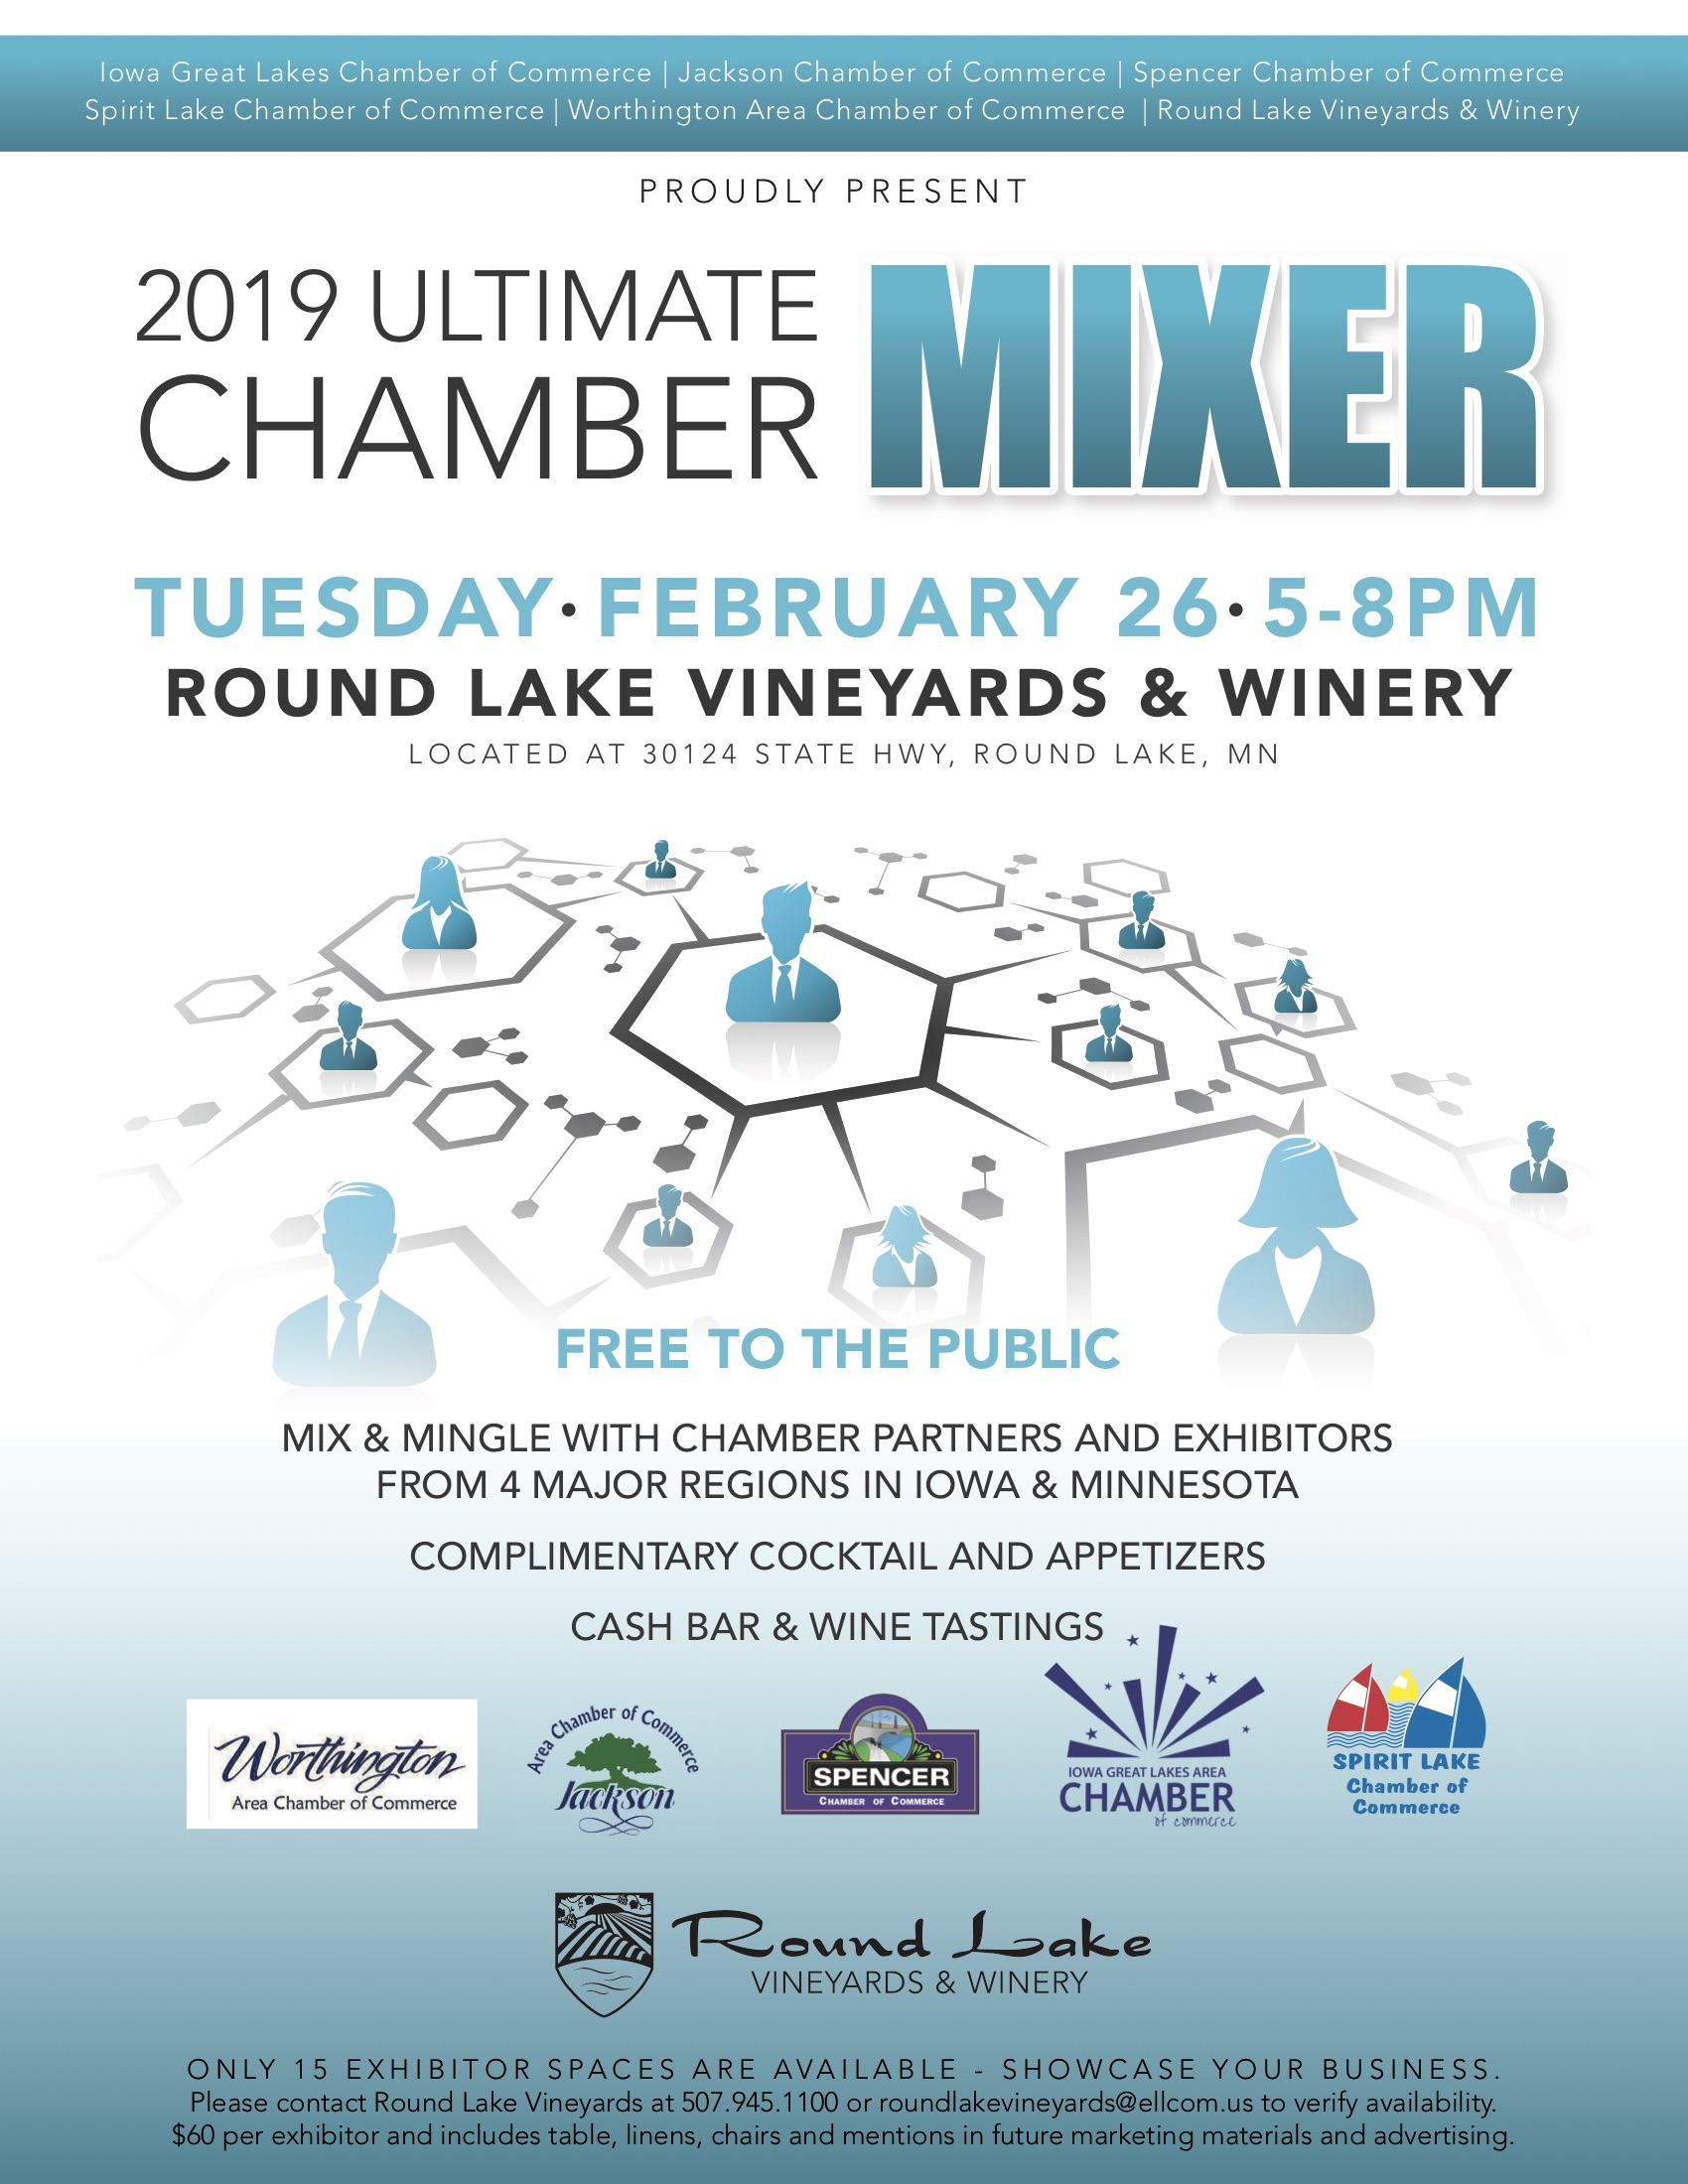 Ultimate Chamber Mixer!